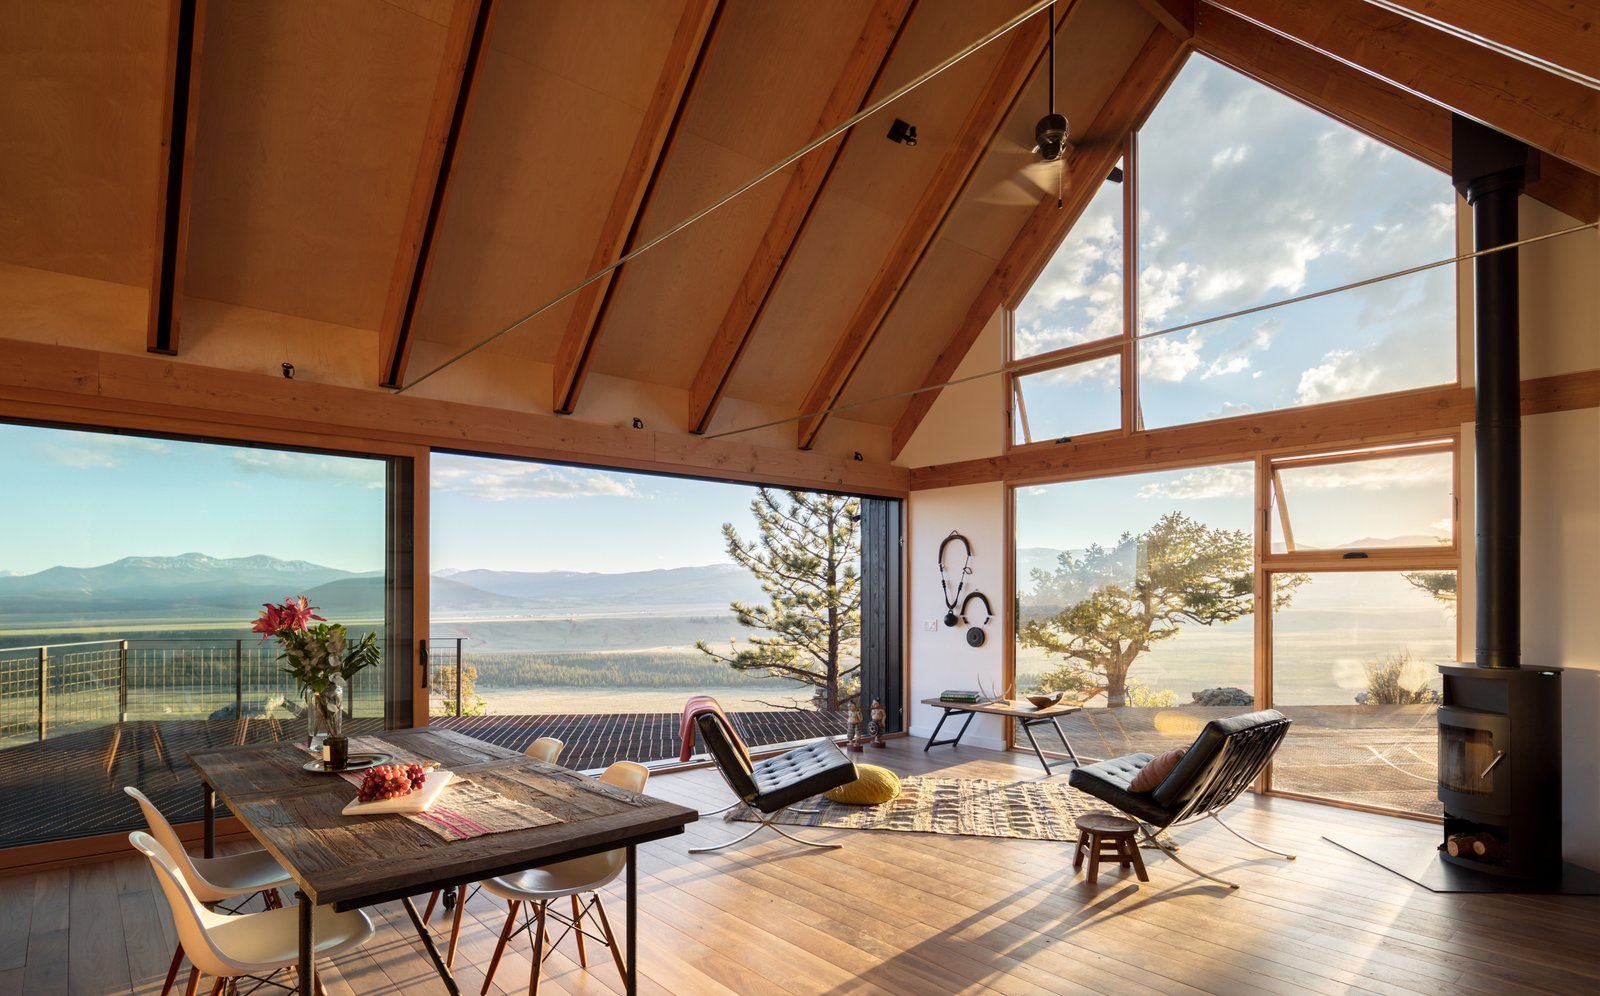 Tagged: Living Room, Wood Burning Fireplace, Table, Chair, and Medium Hardwood Floor.  Big Cabin | Little Cabin by Renée del Gaudio Architecture